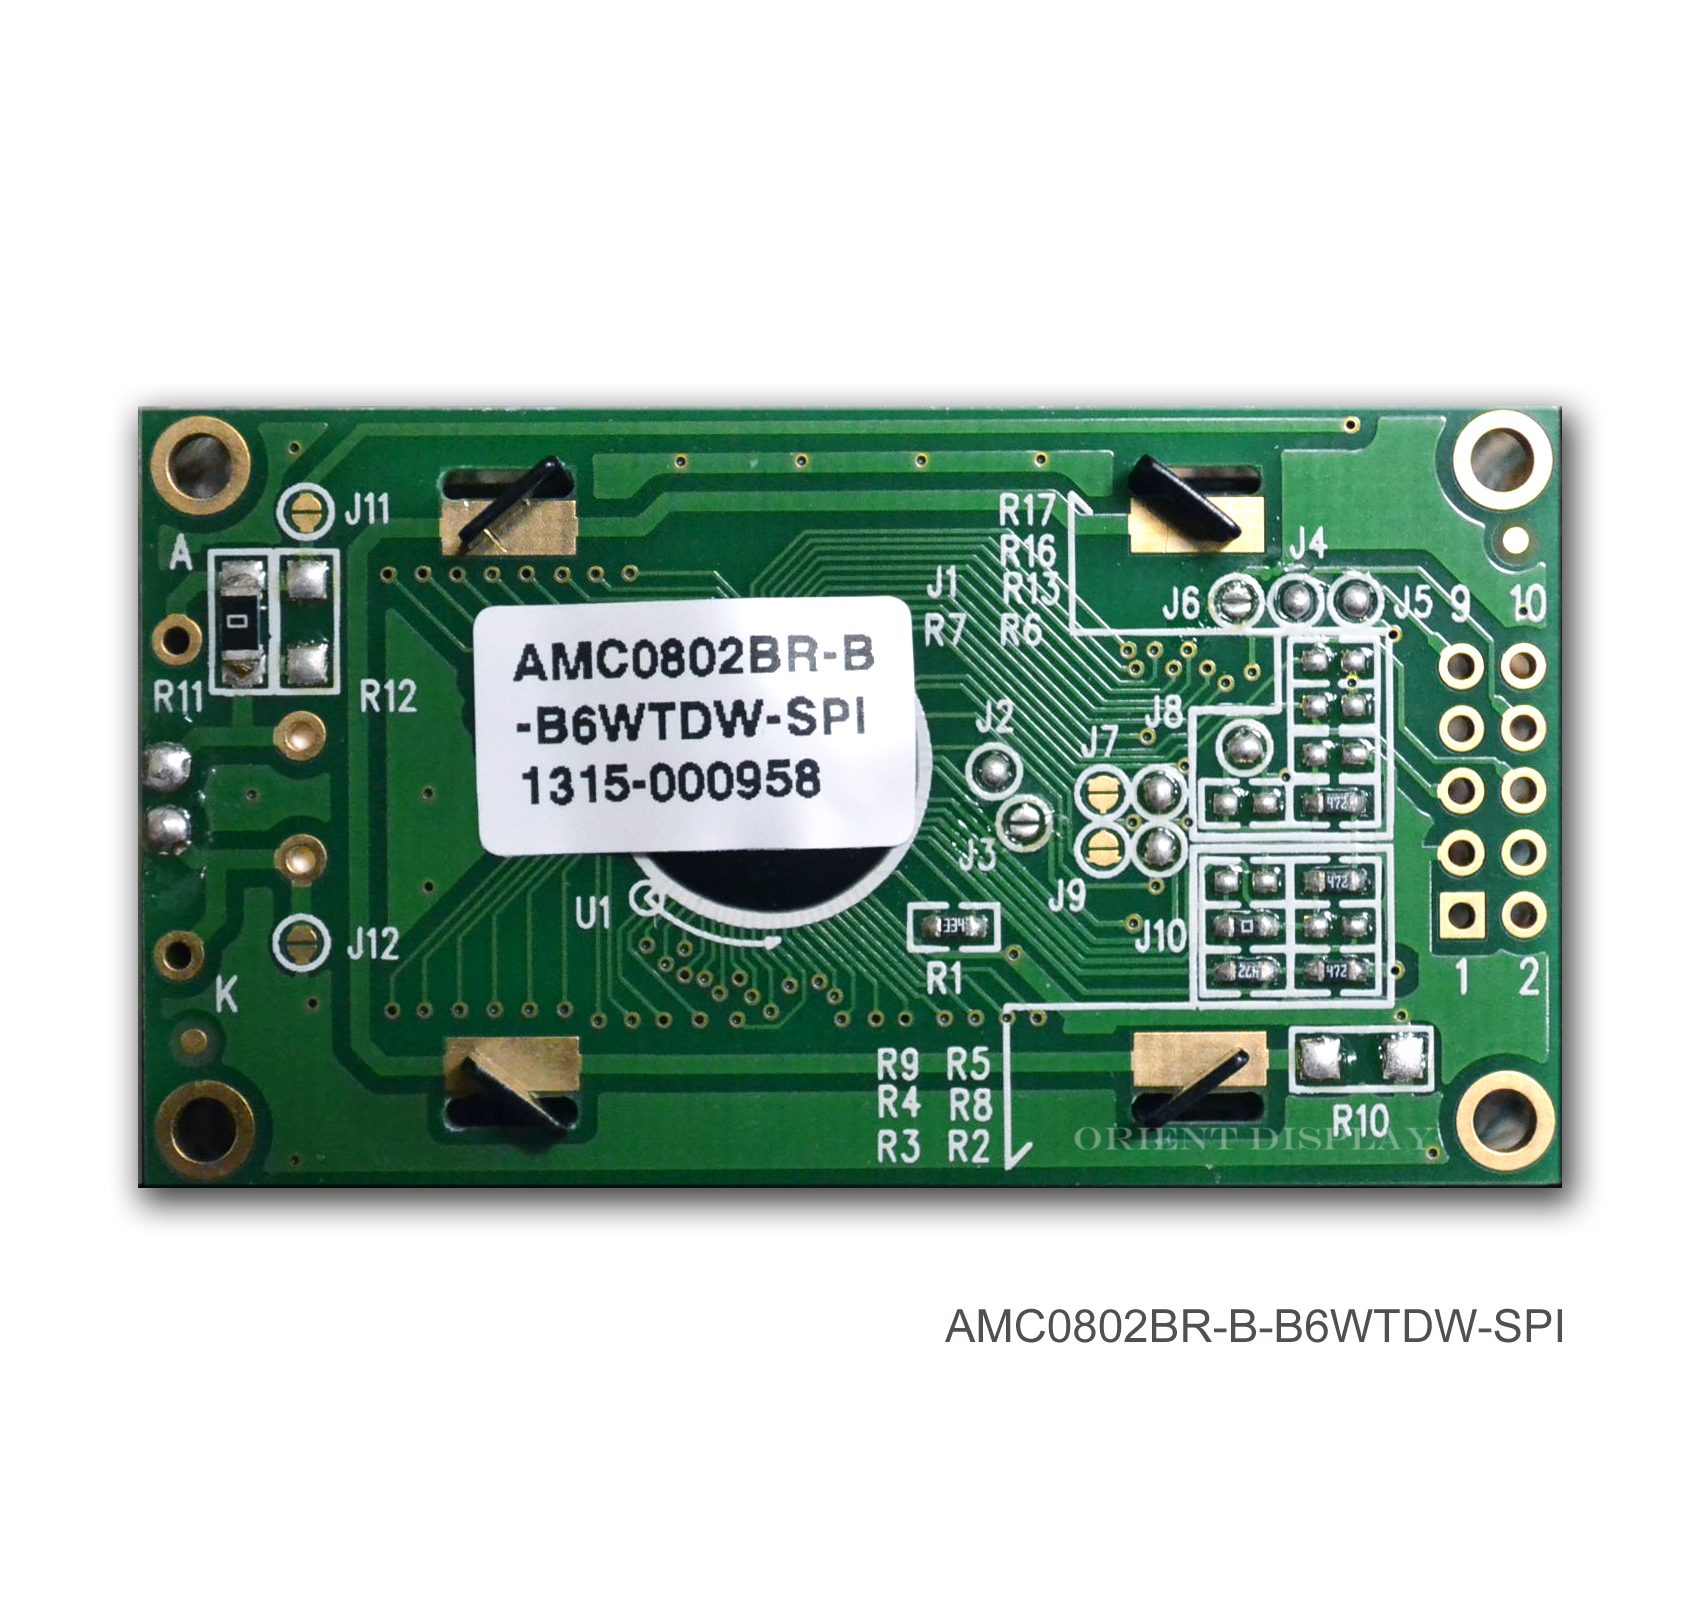 AMC0802BR-B-B6WTDW-SPI (8x2 Character LCD Module - SPI Interface)